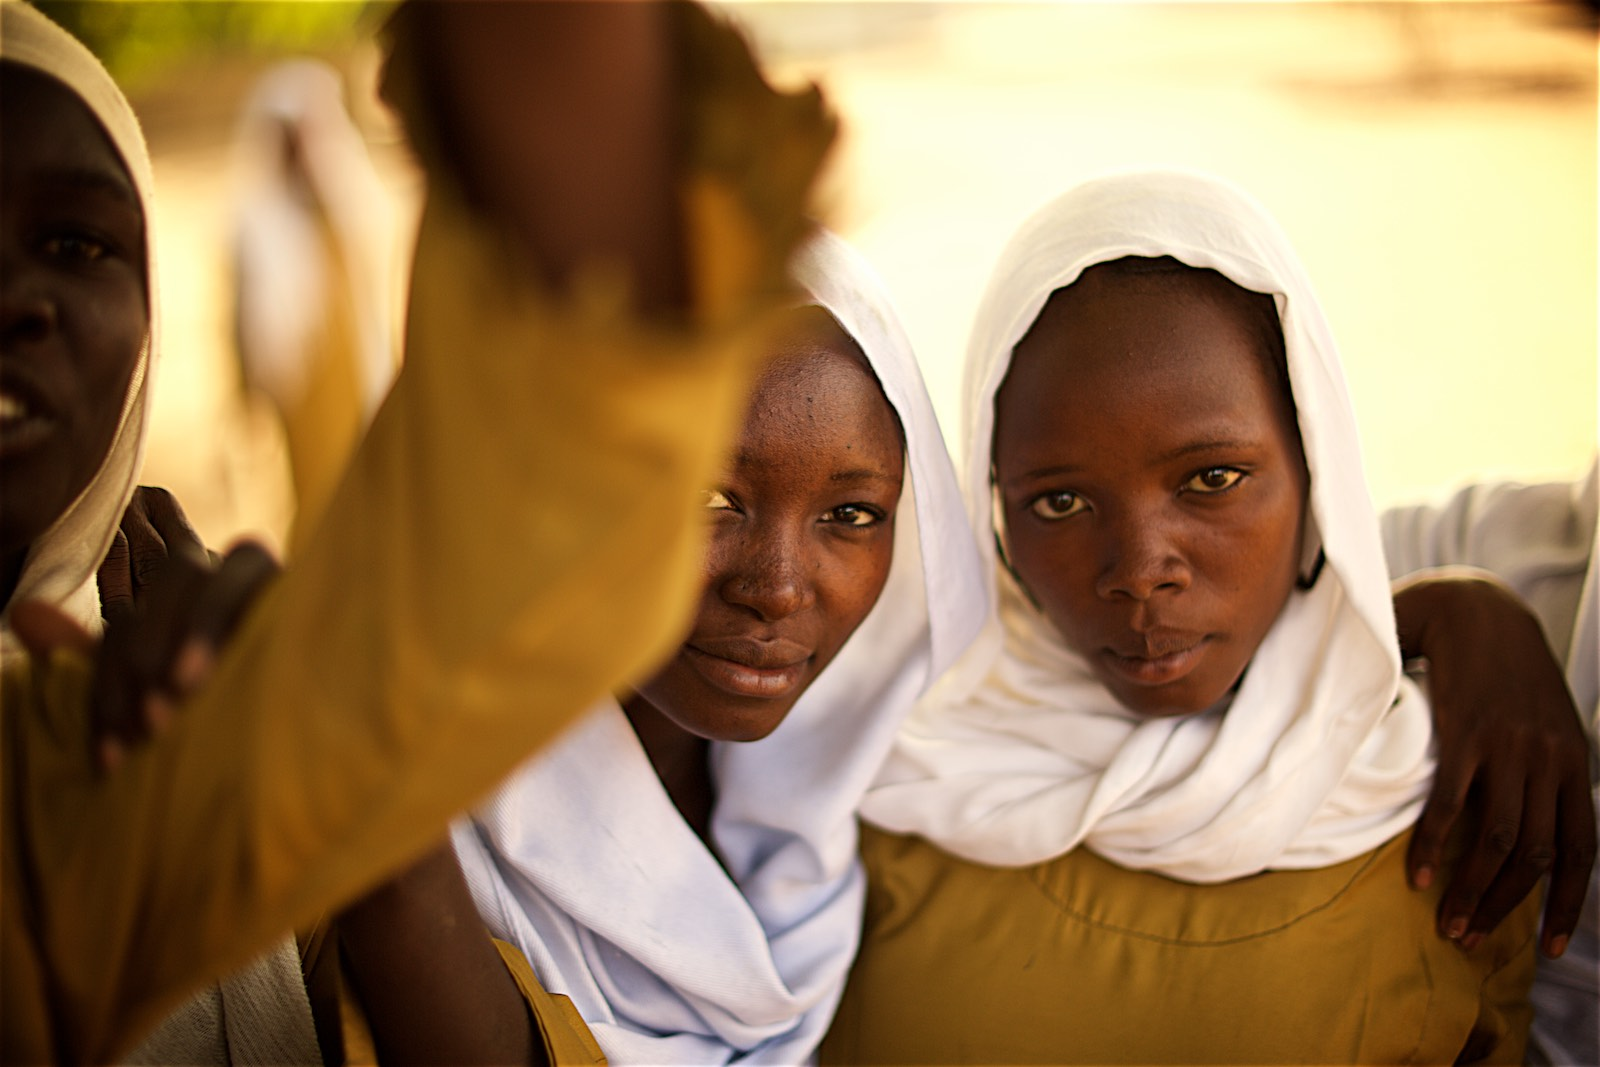 denis-bosnic-chad-school-jrs-jesuit-refugee-service-students-education-mercy-in-motion-35.jpg